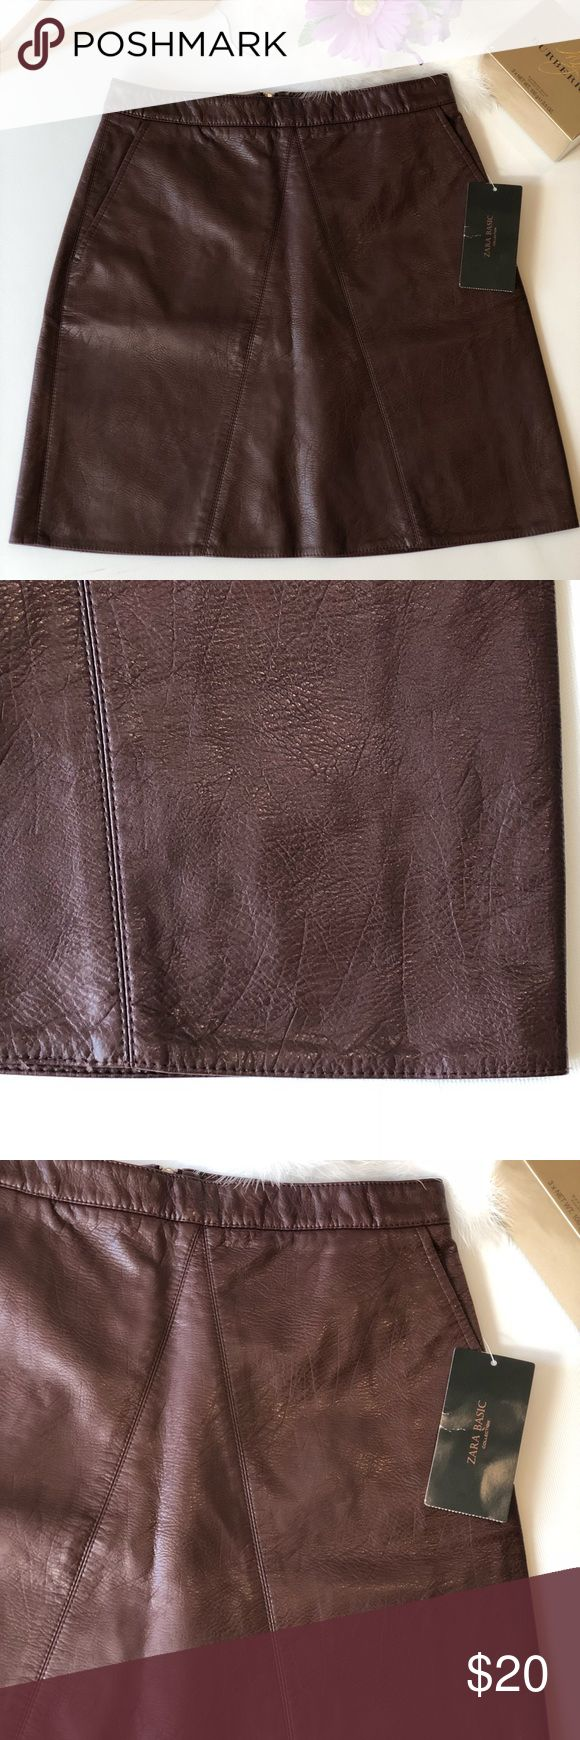 """Zara Basic Faux Leather Maroon brown mini skirt S NWT Zara Basic mini skirt. Maroon brown color . Size S. Please see pictures for fabric information. Front pockets. Back zipper. ALL MEASUREMENTS ARE APPROXIMATELY AND LAYING FLAT: 🔸LENGTH: 17"""" 🔸WAIST: 13"""" 🔸HIPS: 17.5""""  FEEL FREE TO ASK QUESTIONS  I DO NOT TRADE. Zara Skirts Mini"""